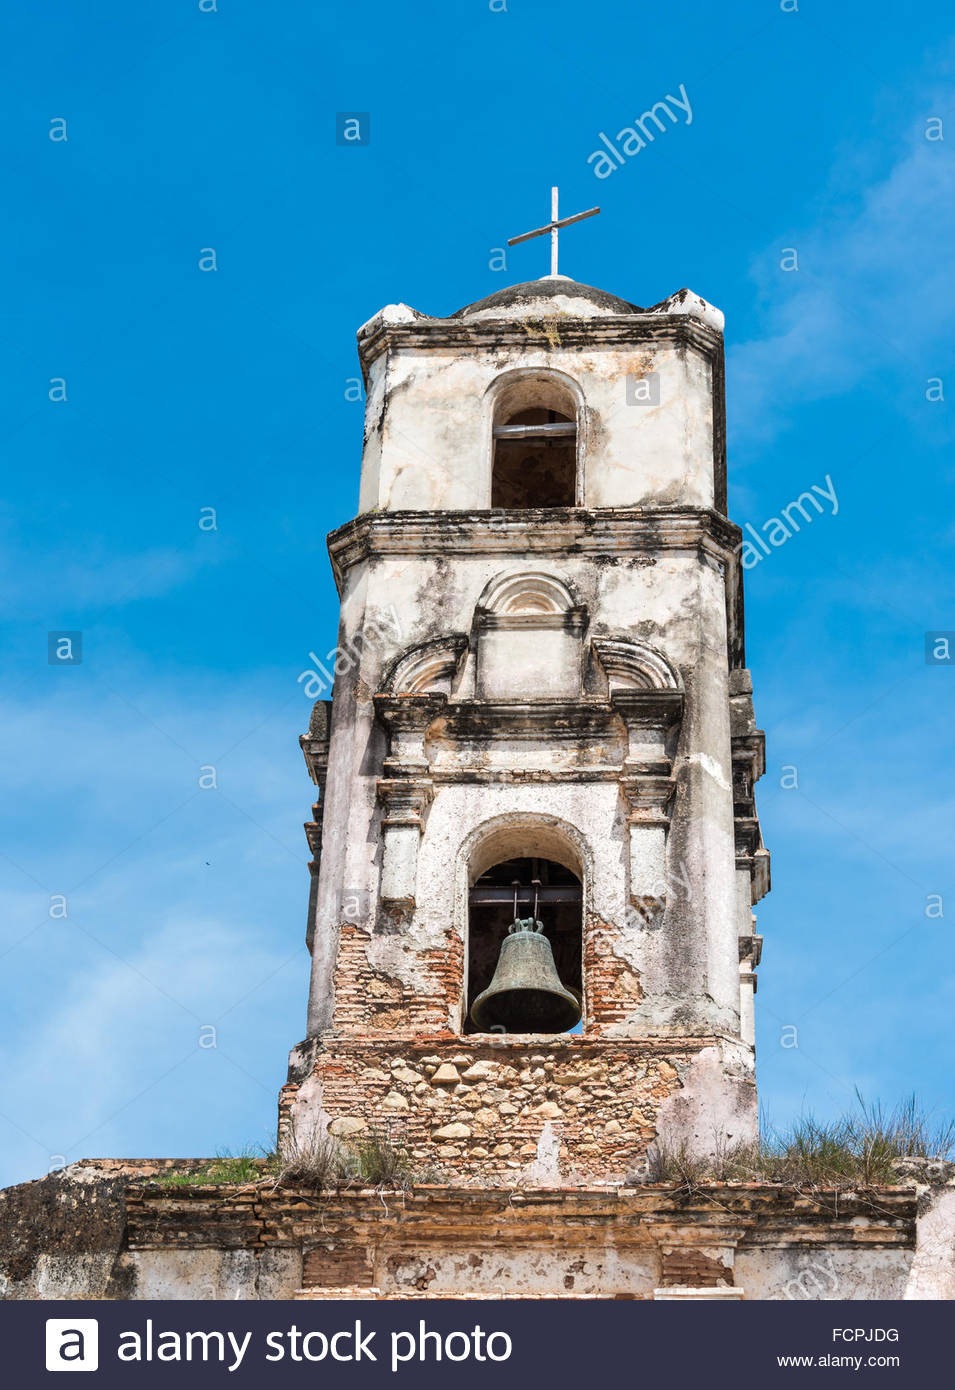 Unrepaired Santa Ana Church architectural details. This church dating from 1812 has long been abandoned and is in - Stock Image